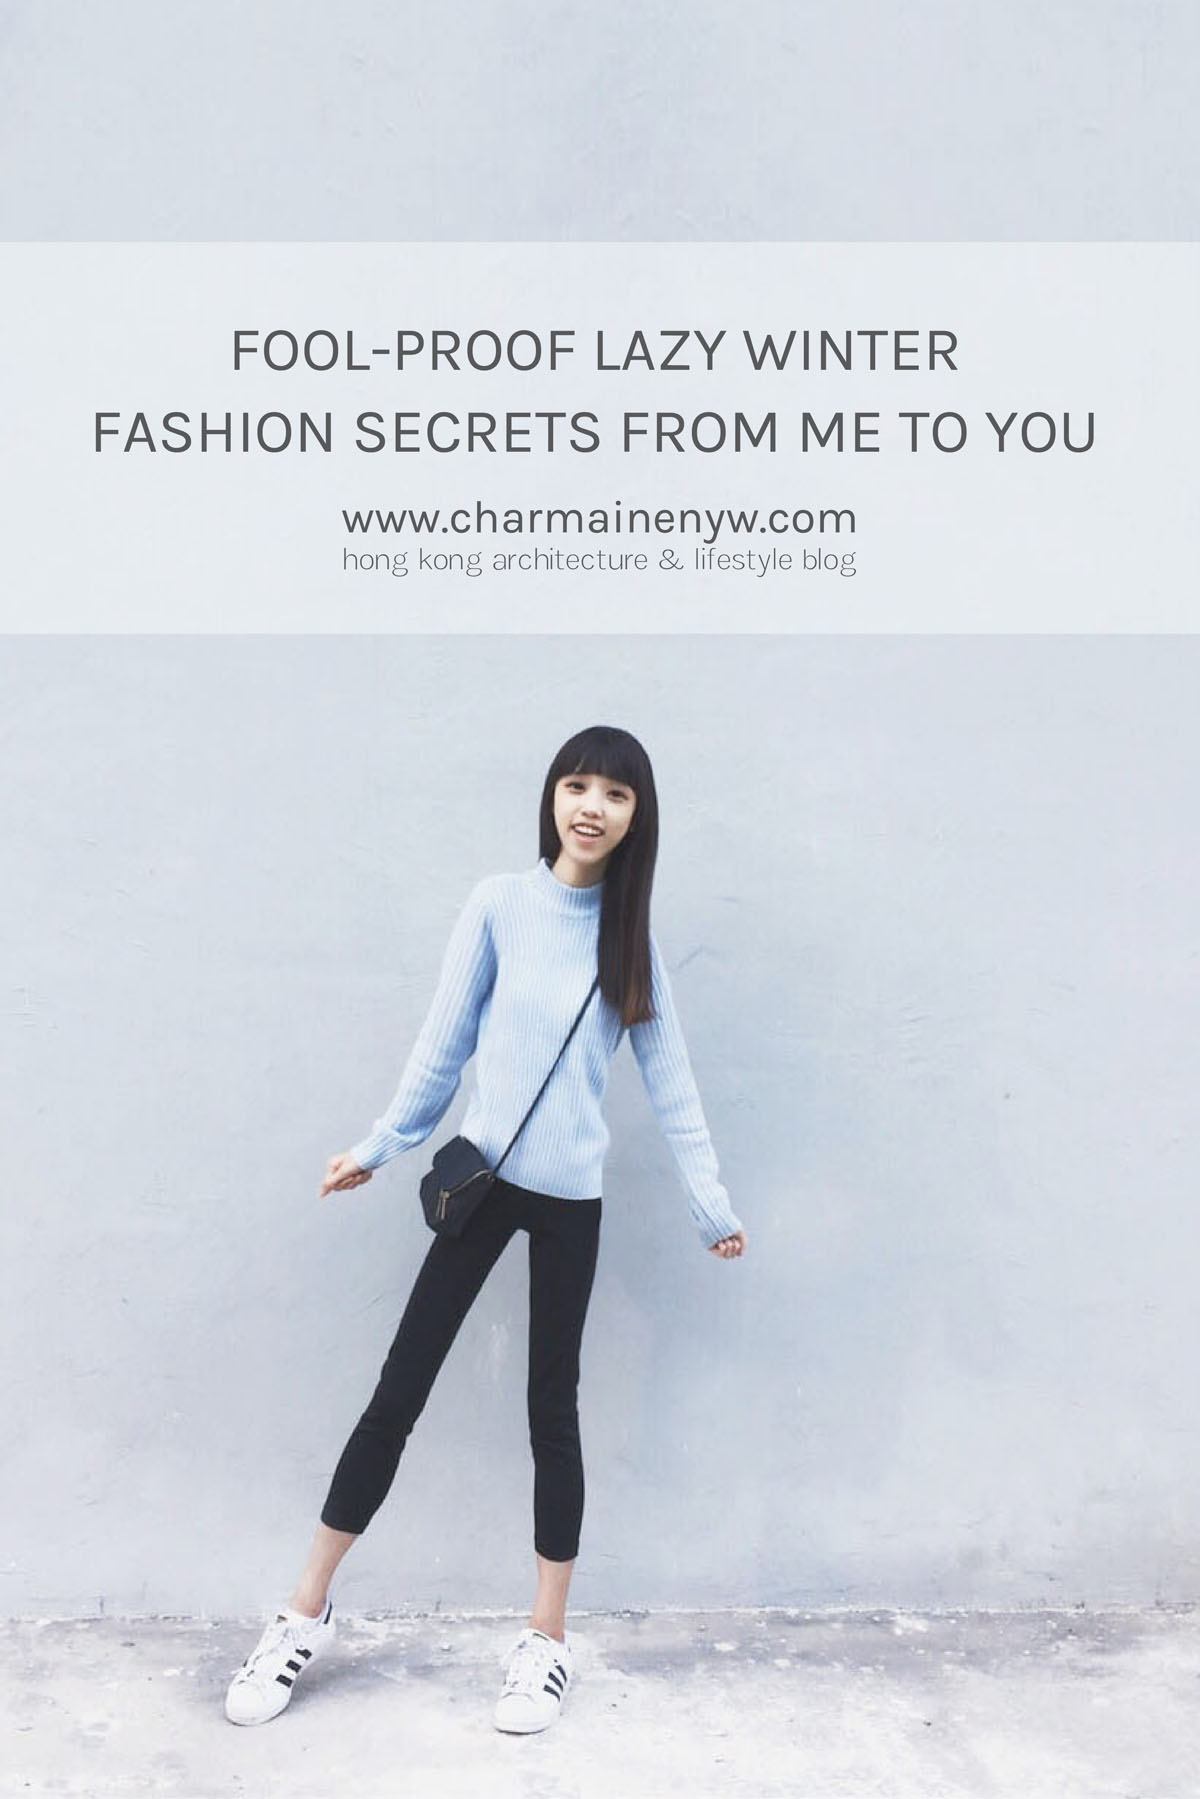 Lazy winter fashion secrets